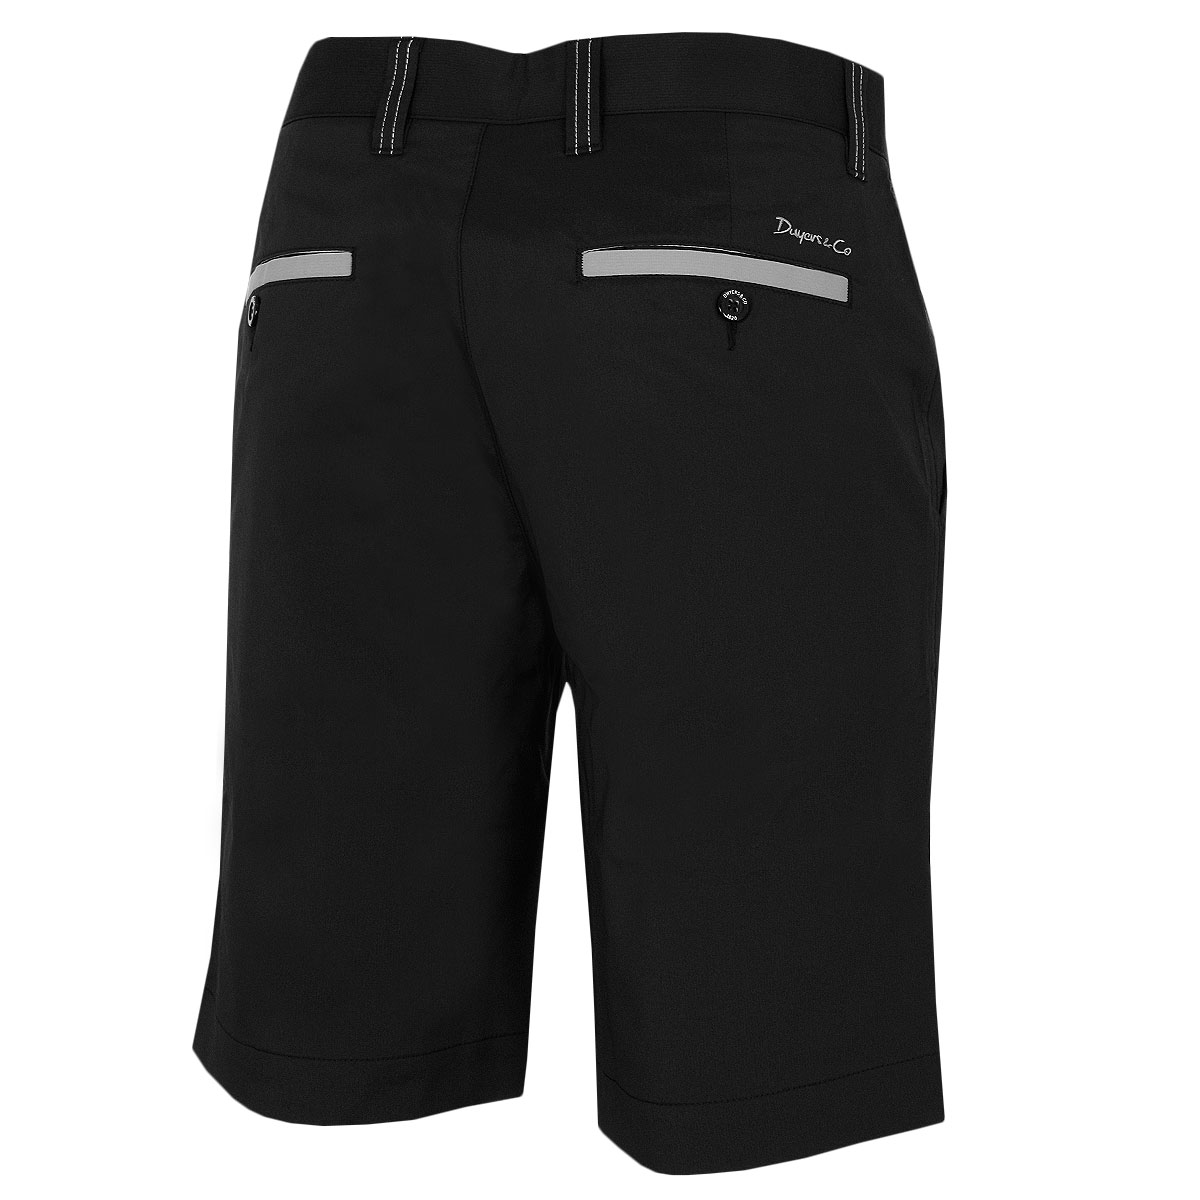 Dwyers-amp-Co-Mens-Matchplay-Performance-Golf-Lightweight-Shorts-26-OFF-RRP thumbnail 3